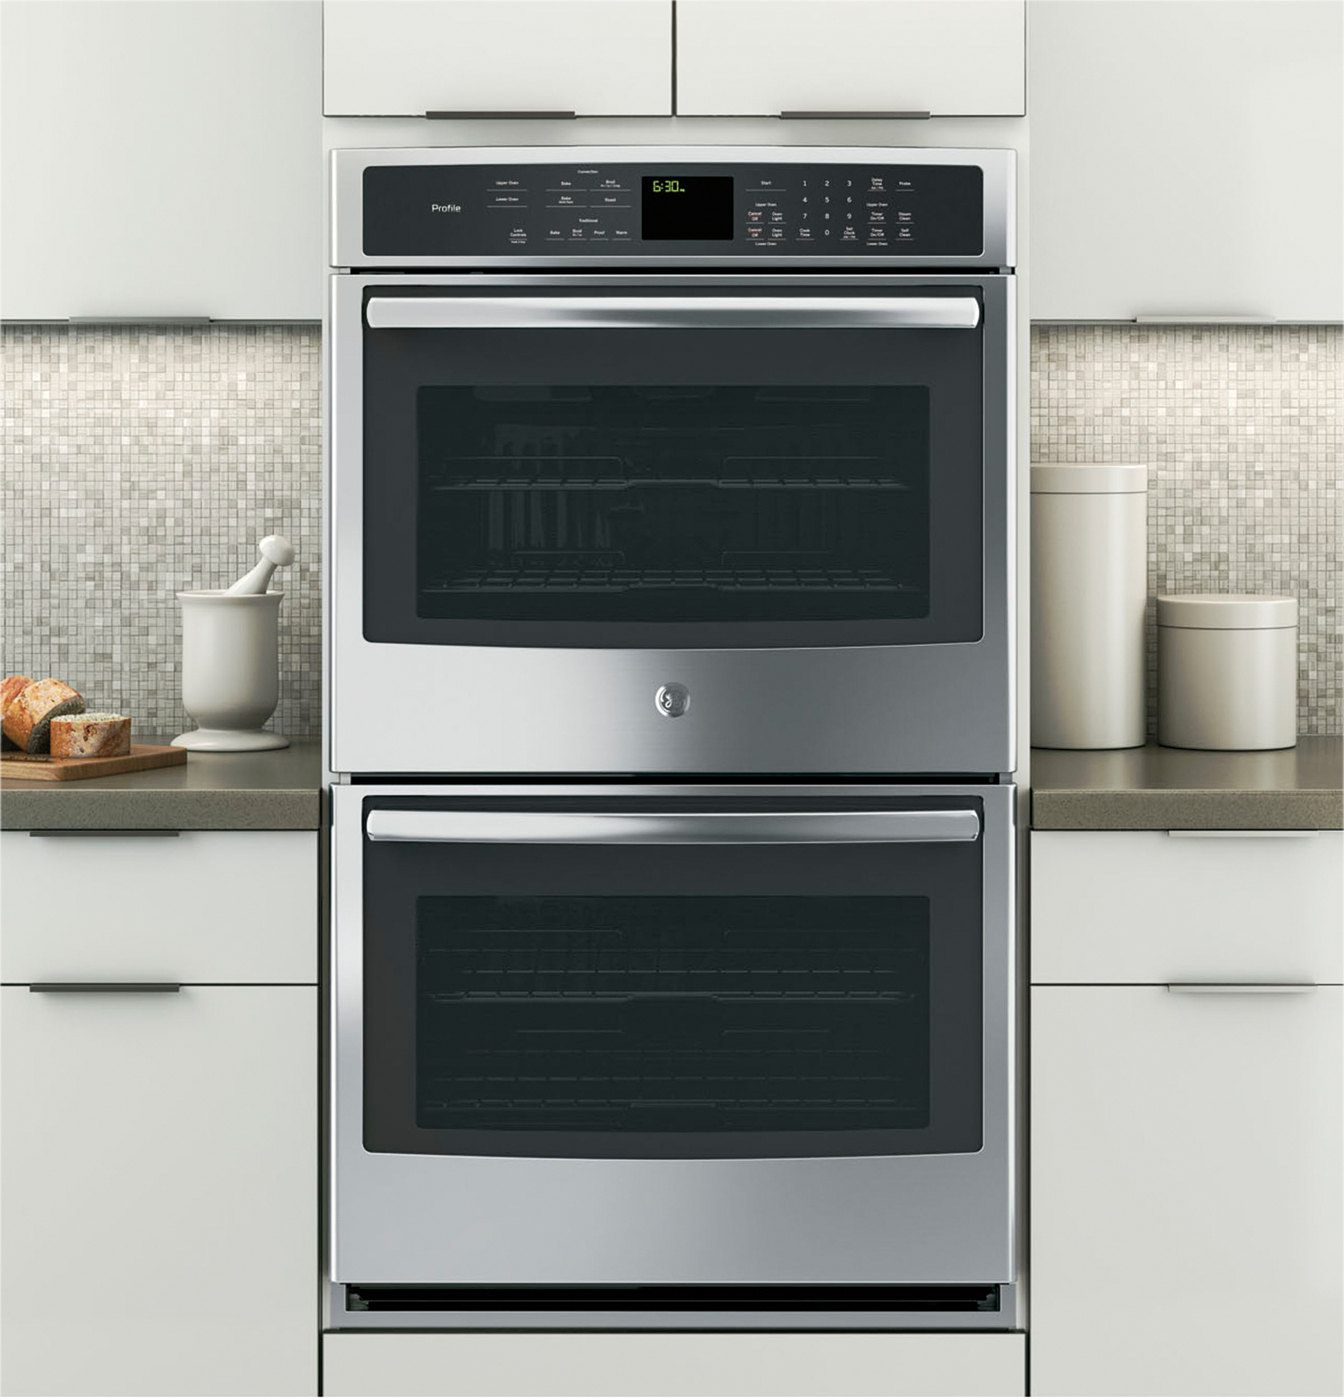 Uncategorized Kitchen Appliances Made In Usa best buy appliances savings and remodel event featuring ge buy